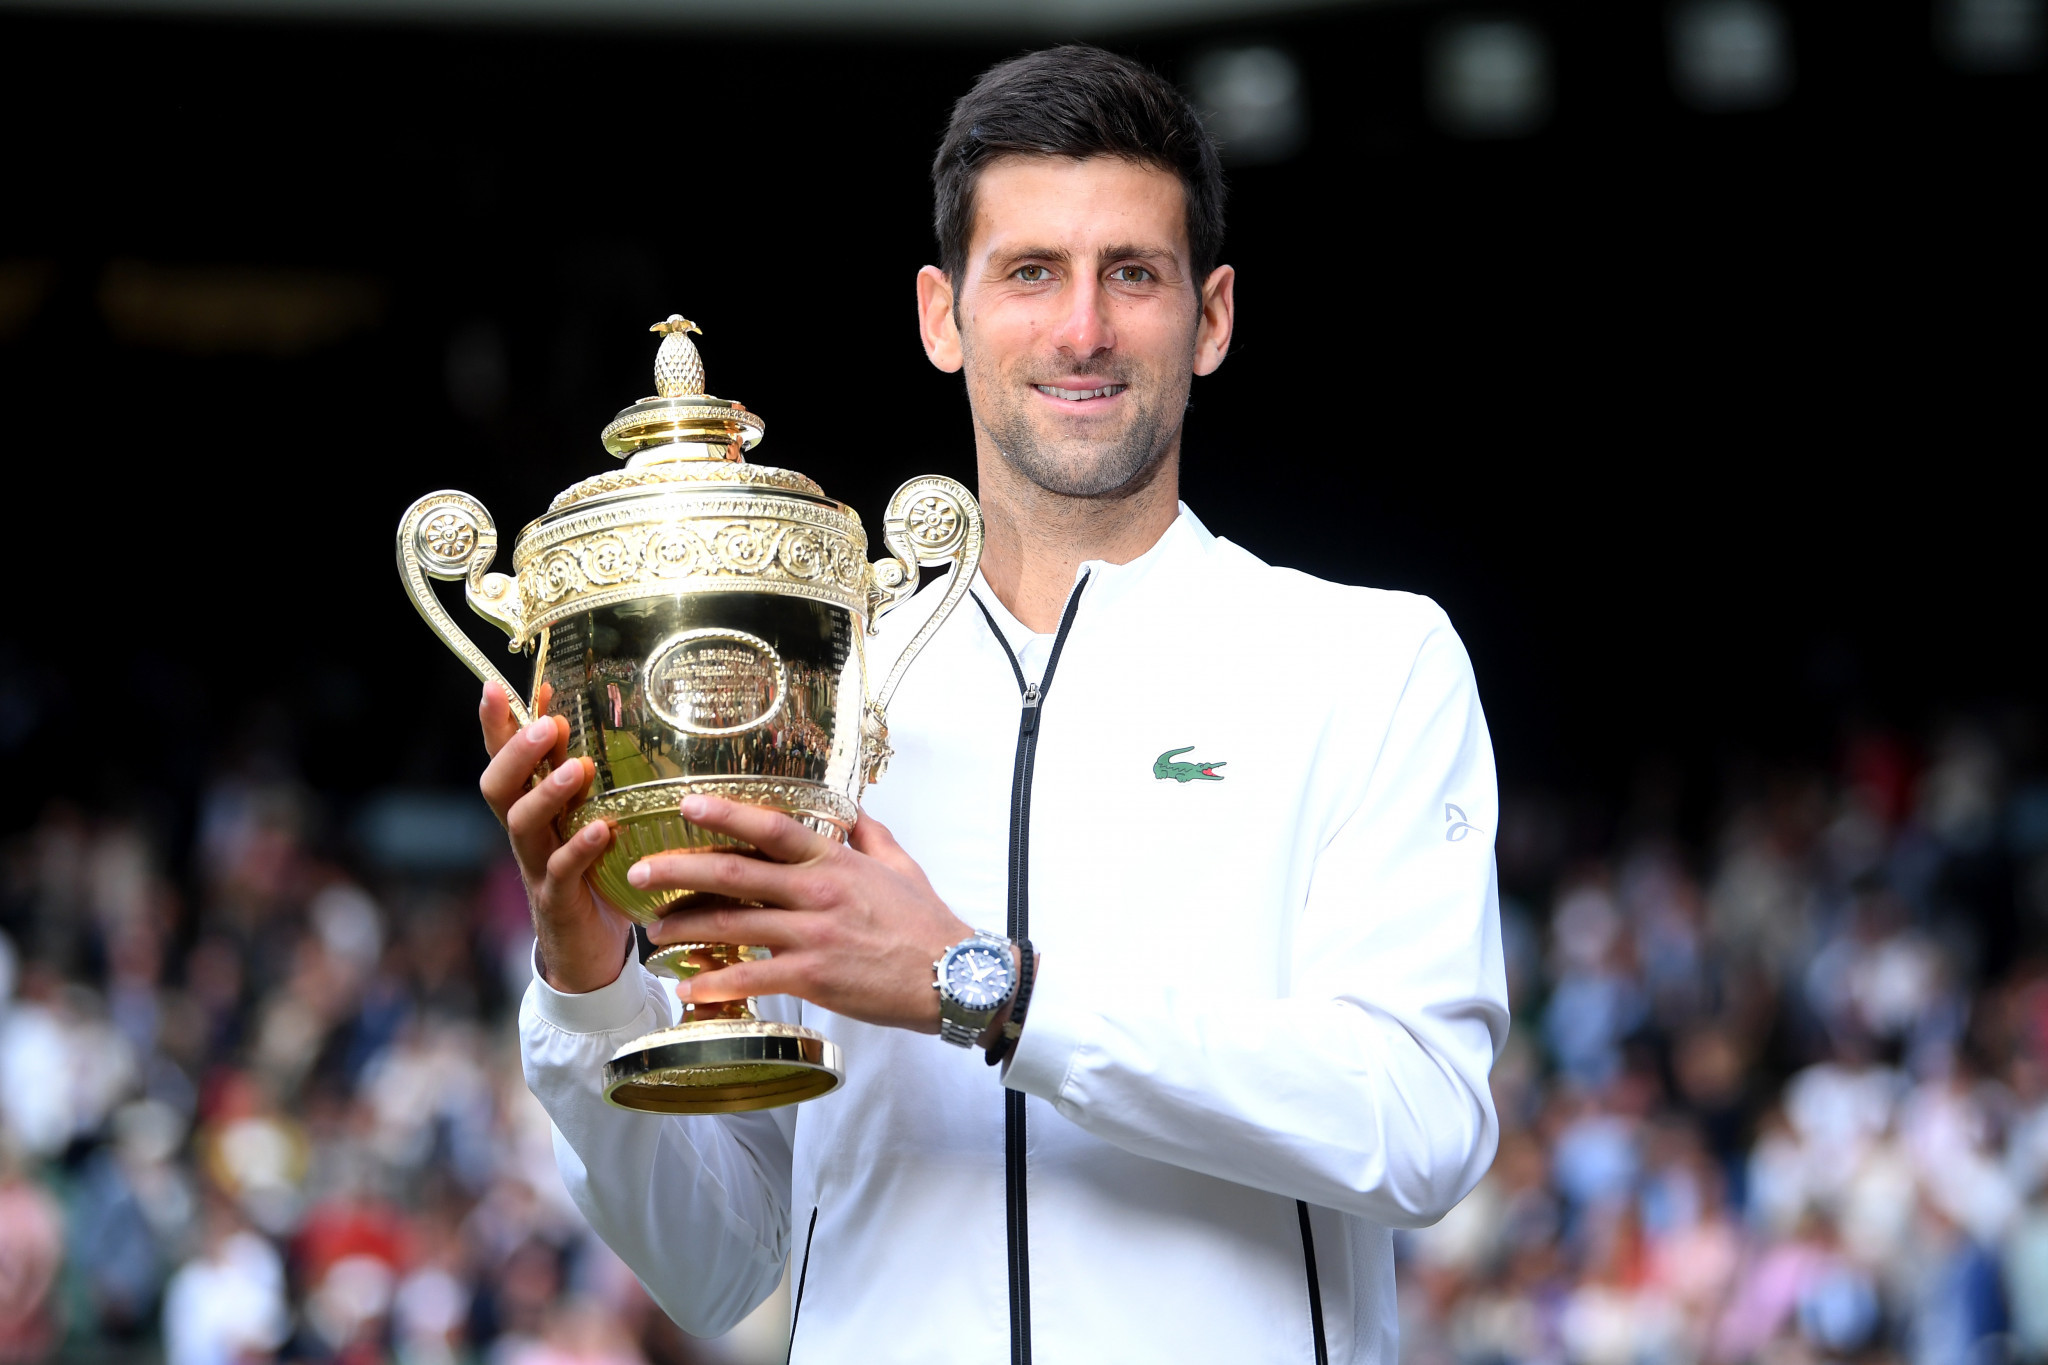 It was a fifth Wimbledon title for world number one Djokovic ©Getty Images